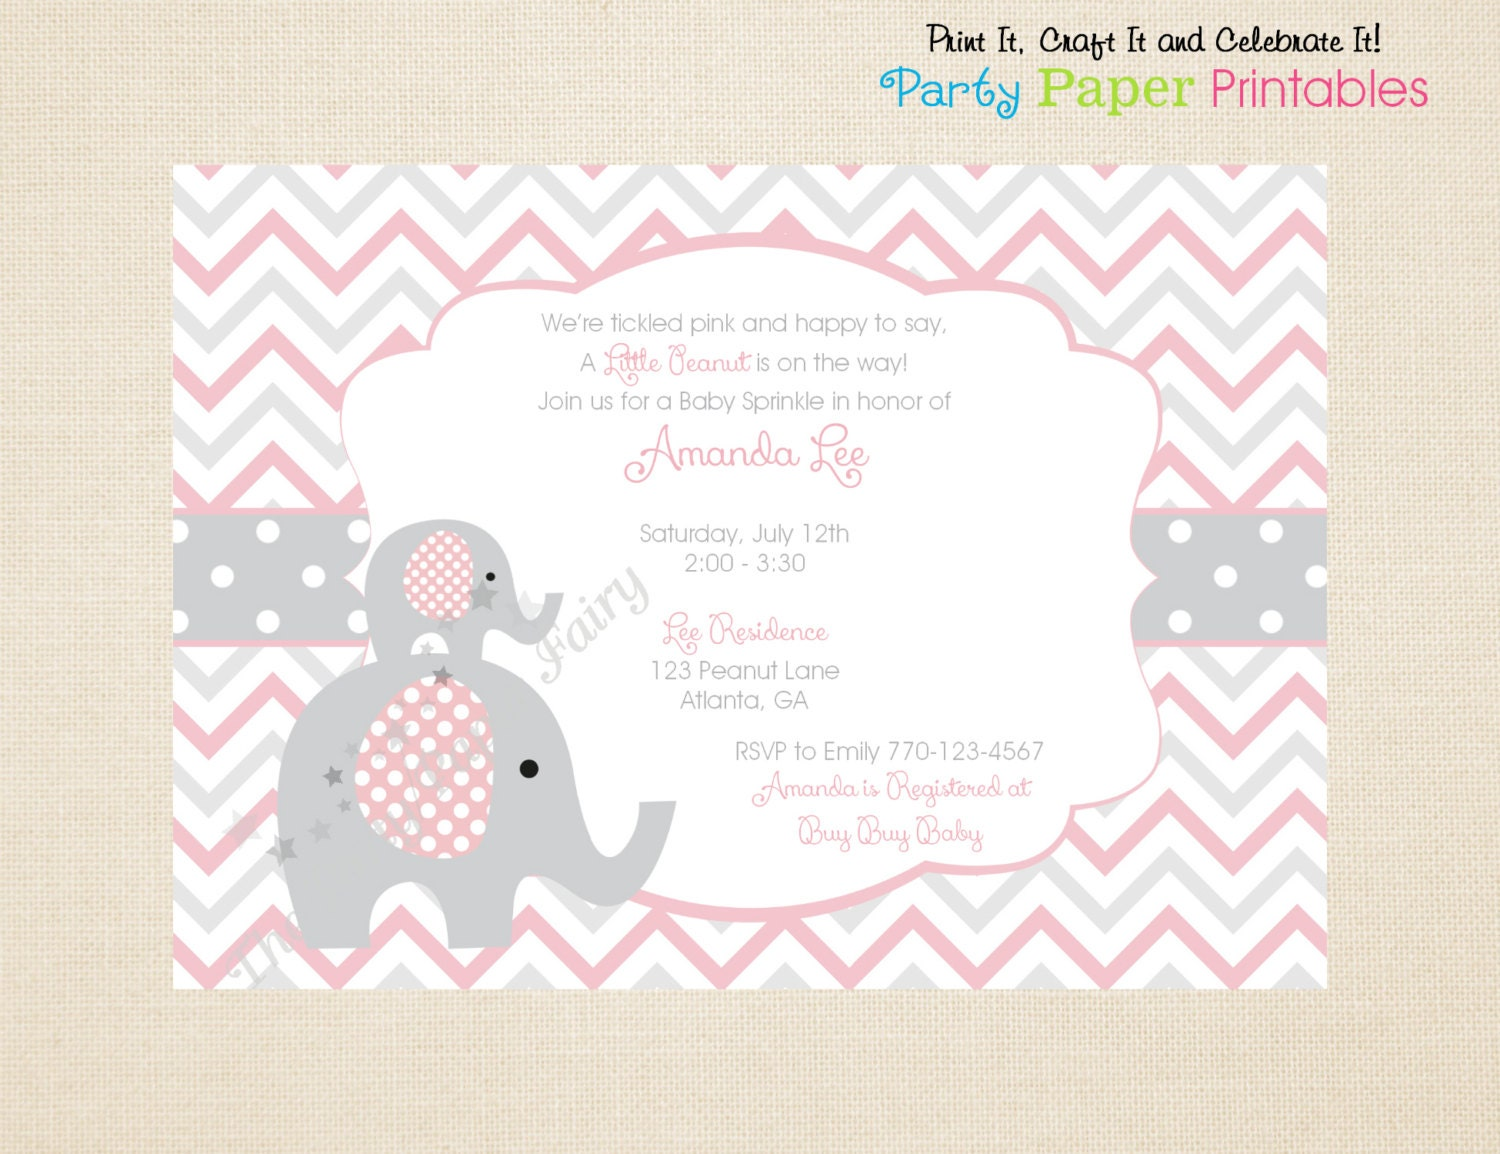 printable little peanut baby shower by partypaperprintables